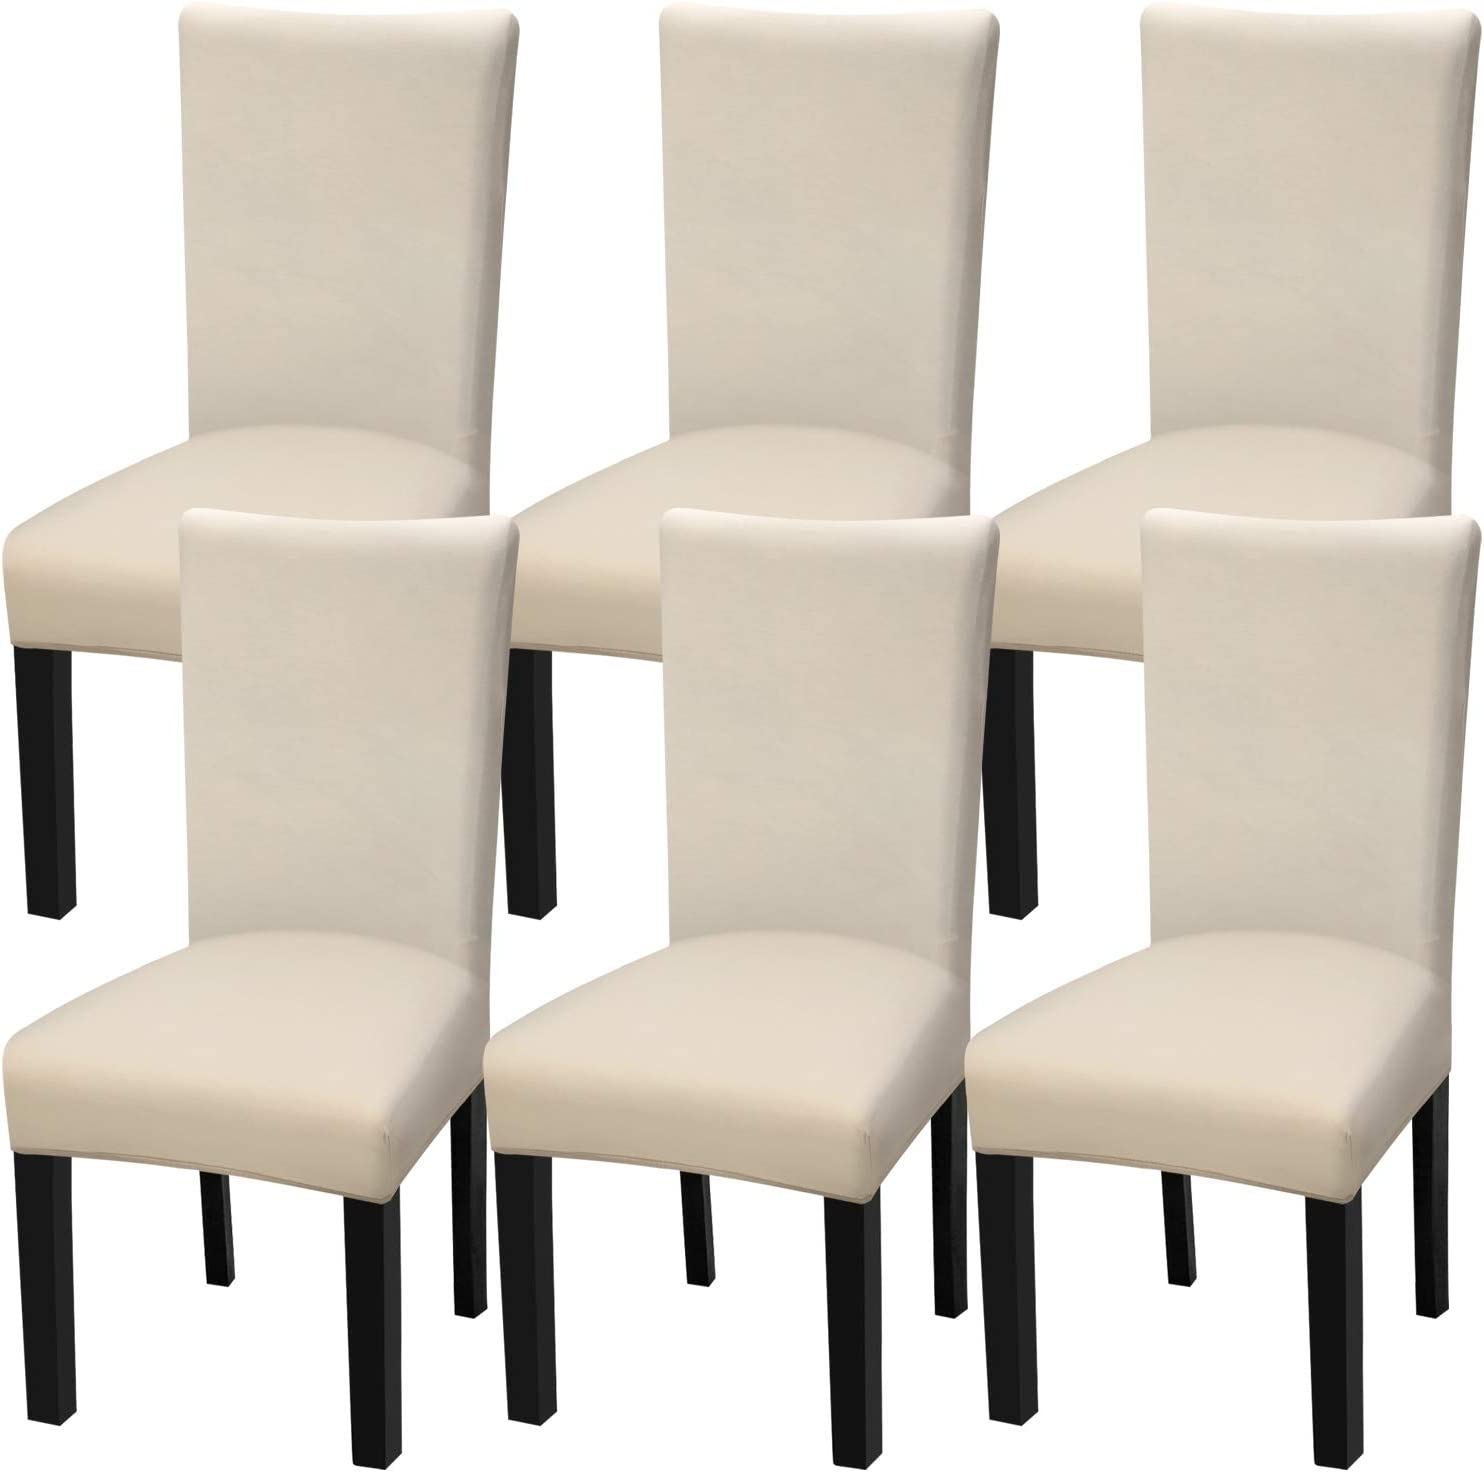 Fuloon 6 Pack Super Fit Stretch Removable Washable Short Dining Chair Protector Cover Seat Slipcover for Hotel,Dining Room,Ceremony,Banquet Wedding Party (Cream-Coloured): Kitchen & Dining